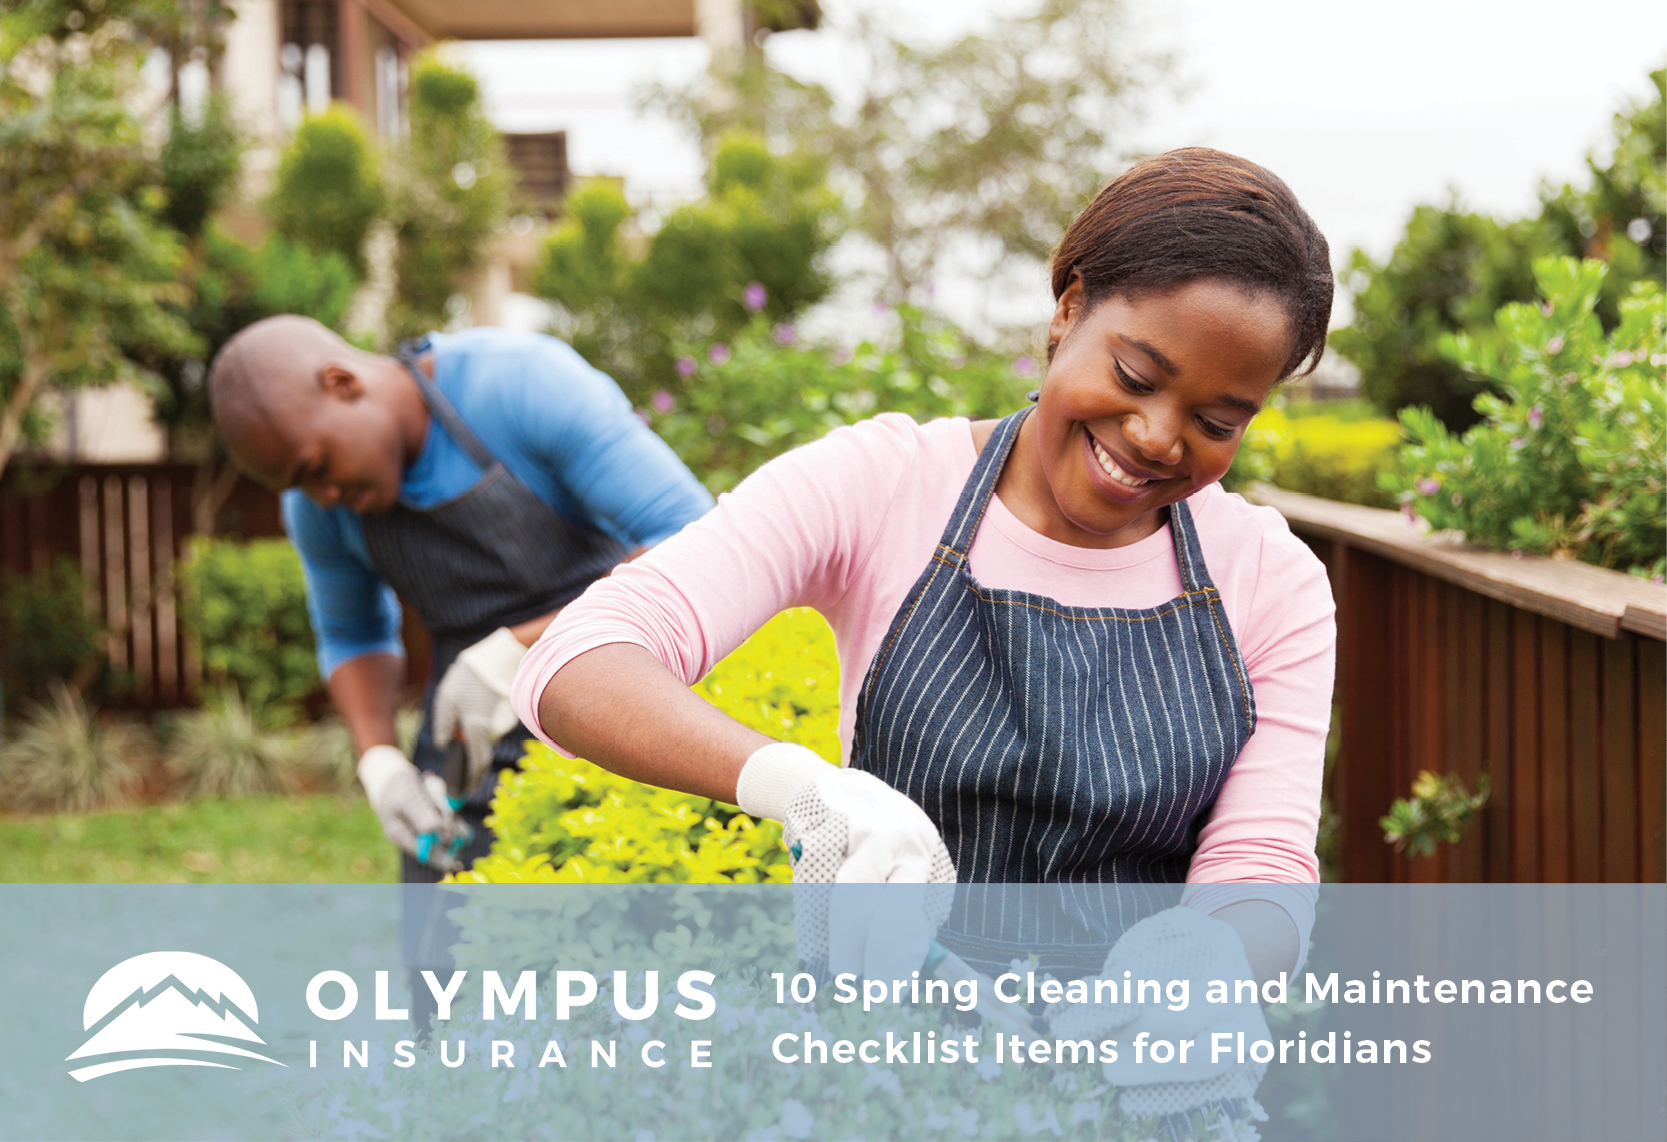 10 Spring Cleaning and Maintenance Checklist Items for Floridians